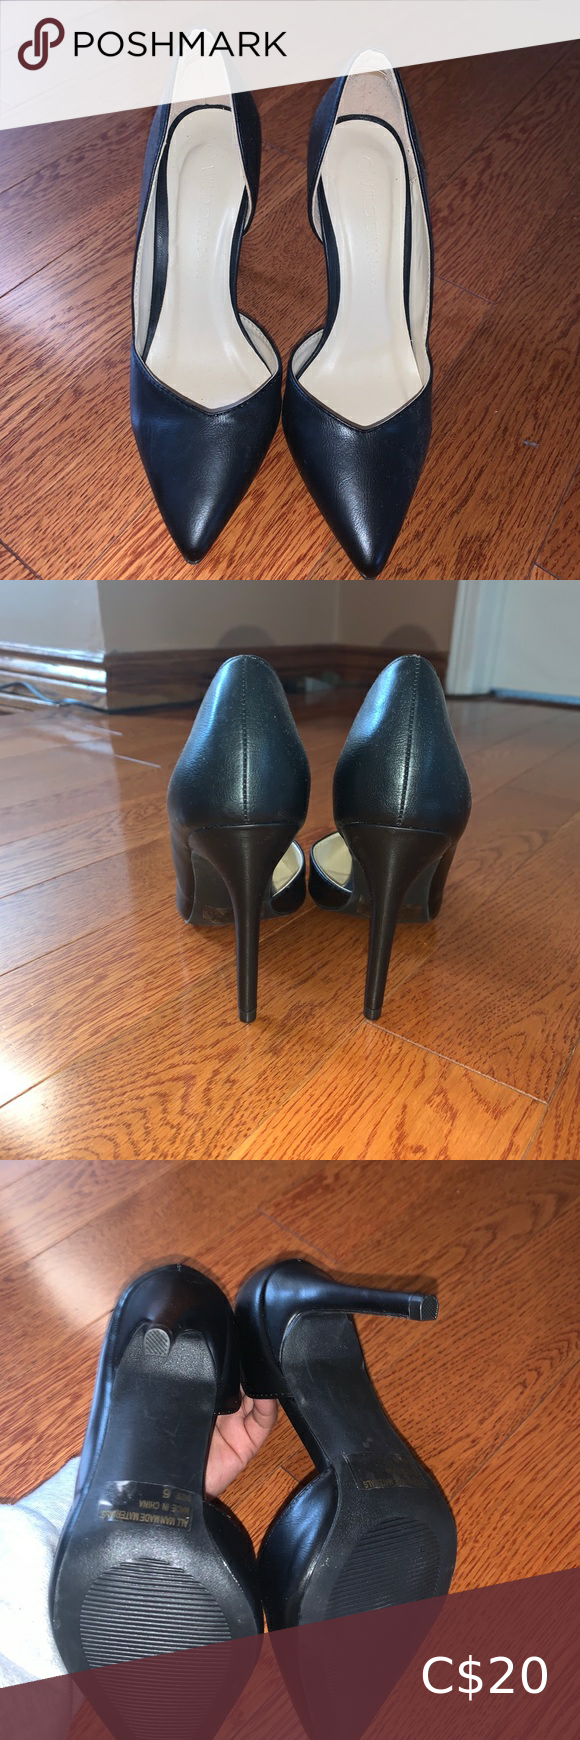 Black heels Size 6. Never worn. Bought a while back but never wore them. Wild Diva Shoes Heels